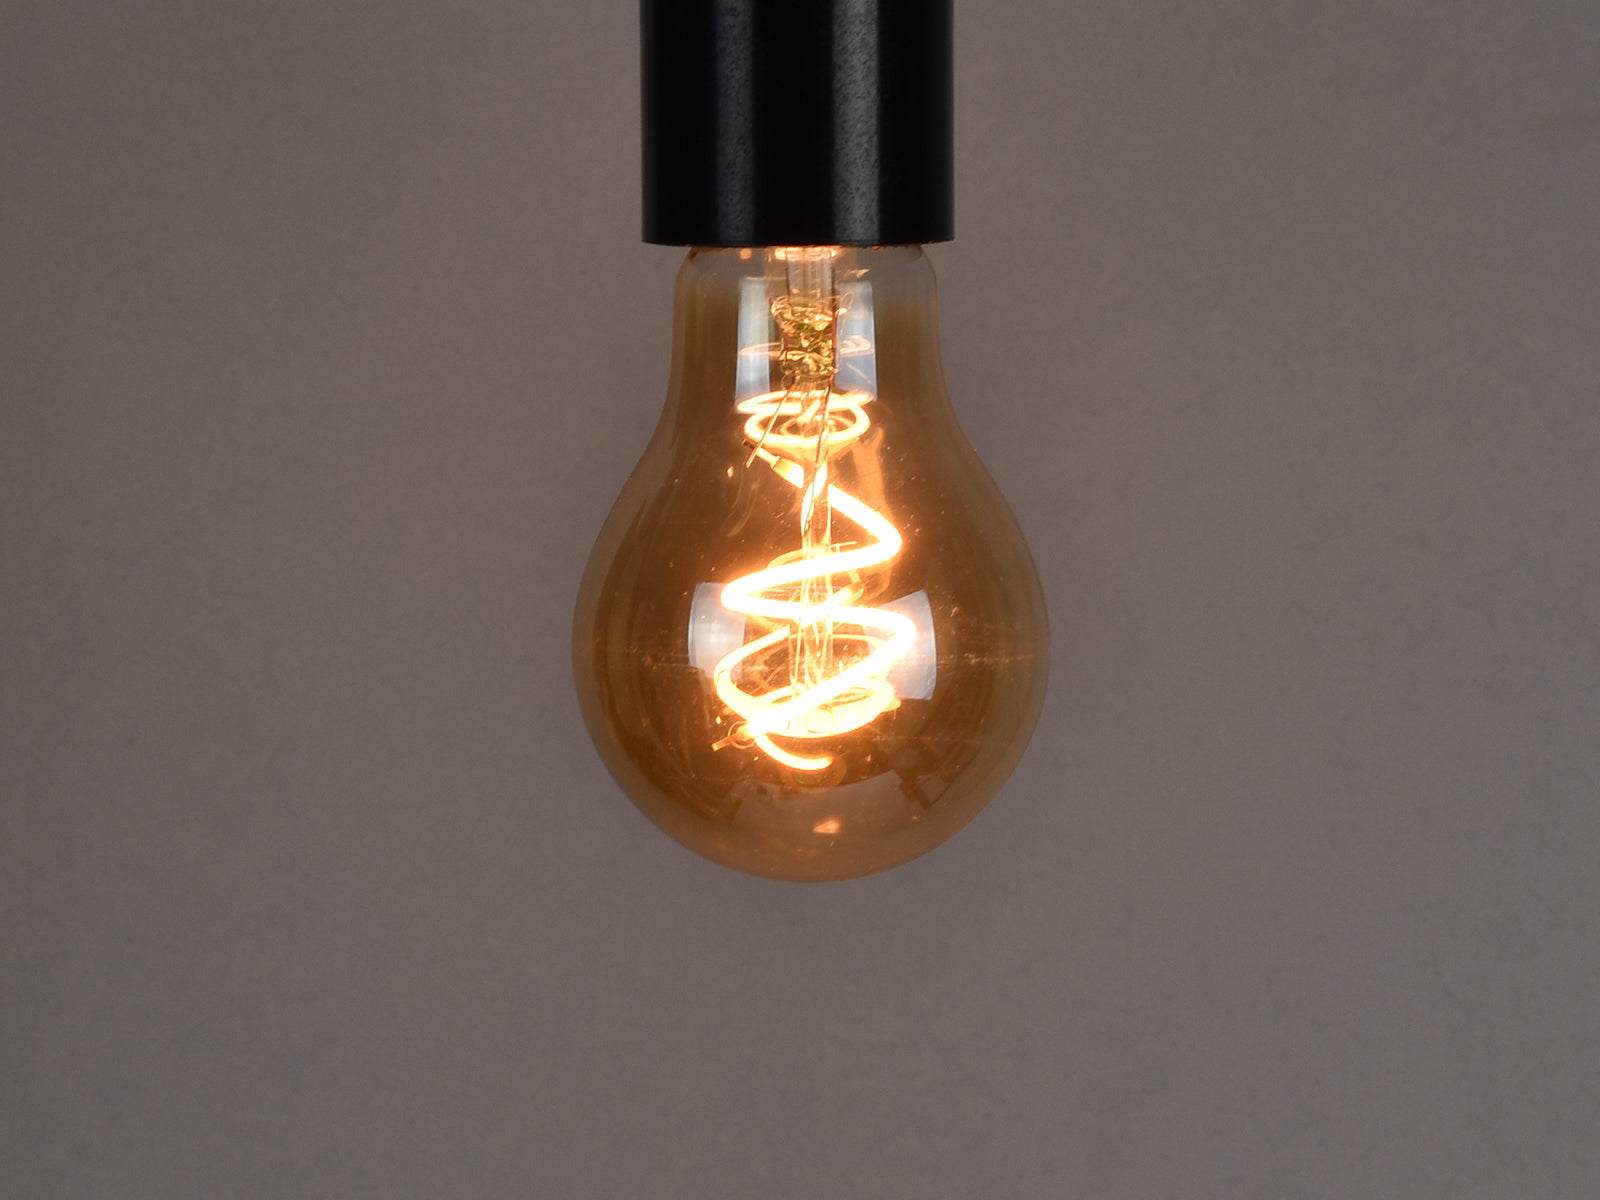 B22 LED Filament Bulb | A19 | Spiral - Vendimia Lighting Co.